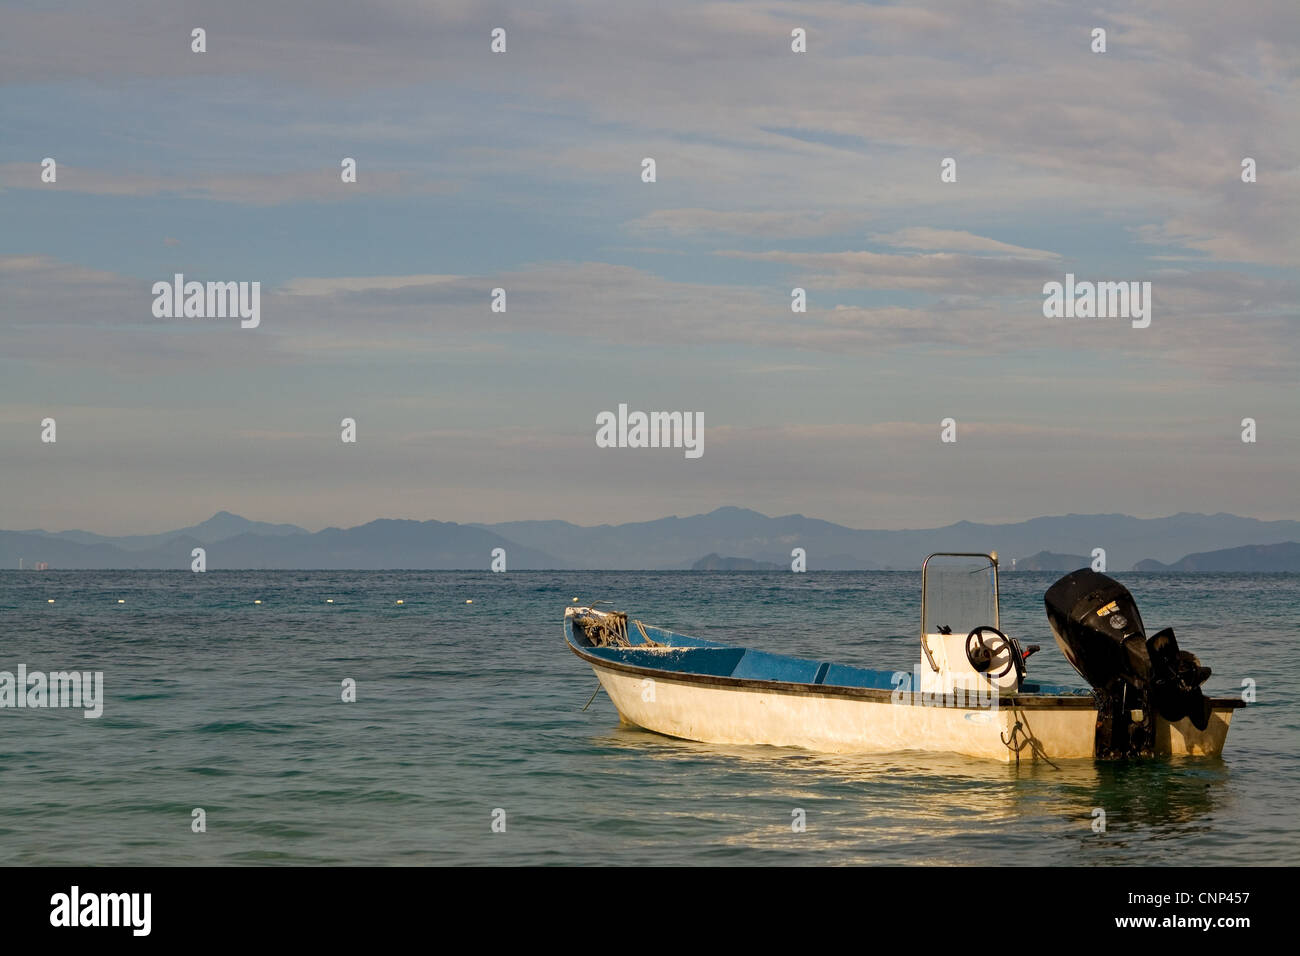 Anchored boat in the ocean - Stock Image